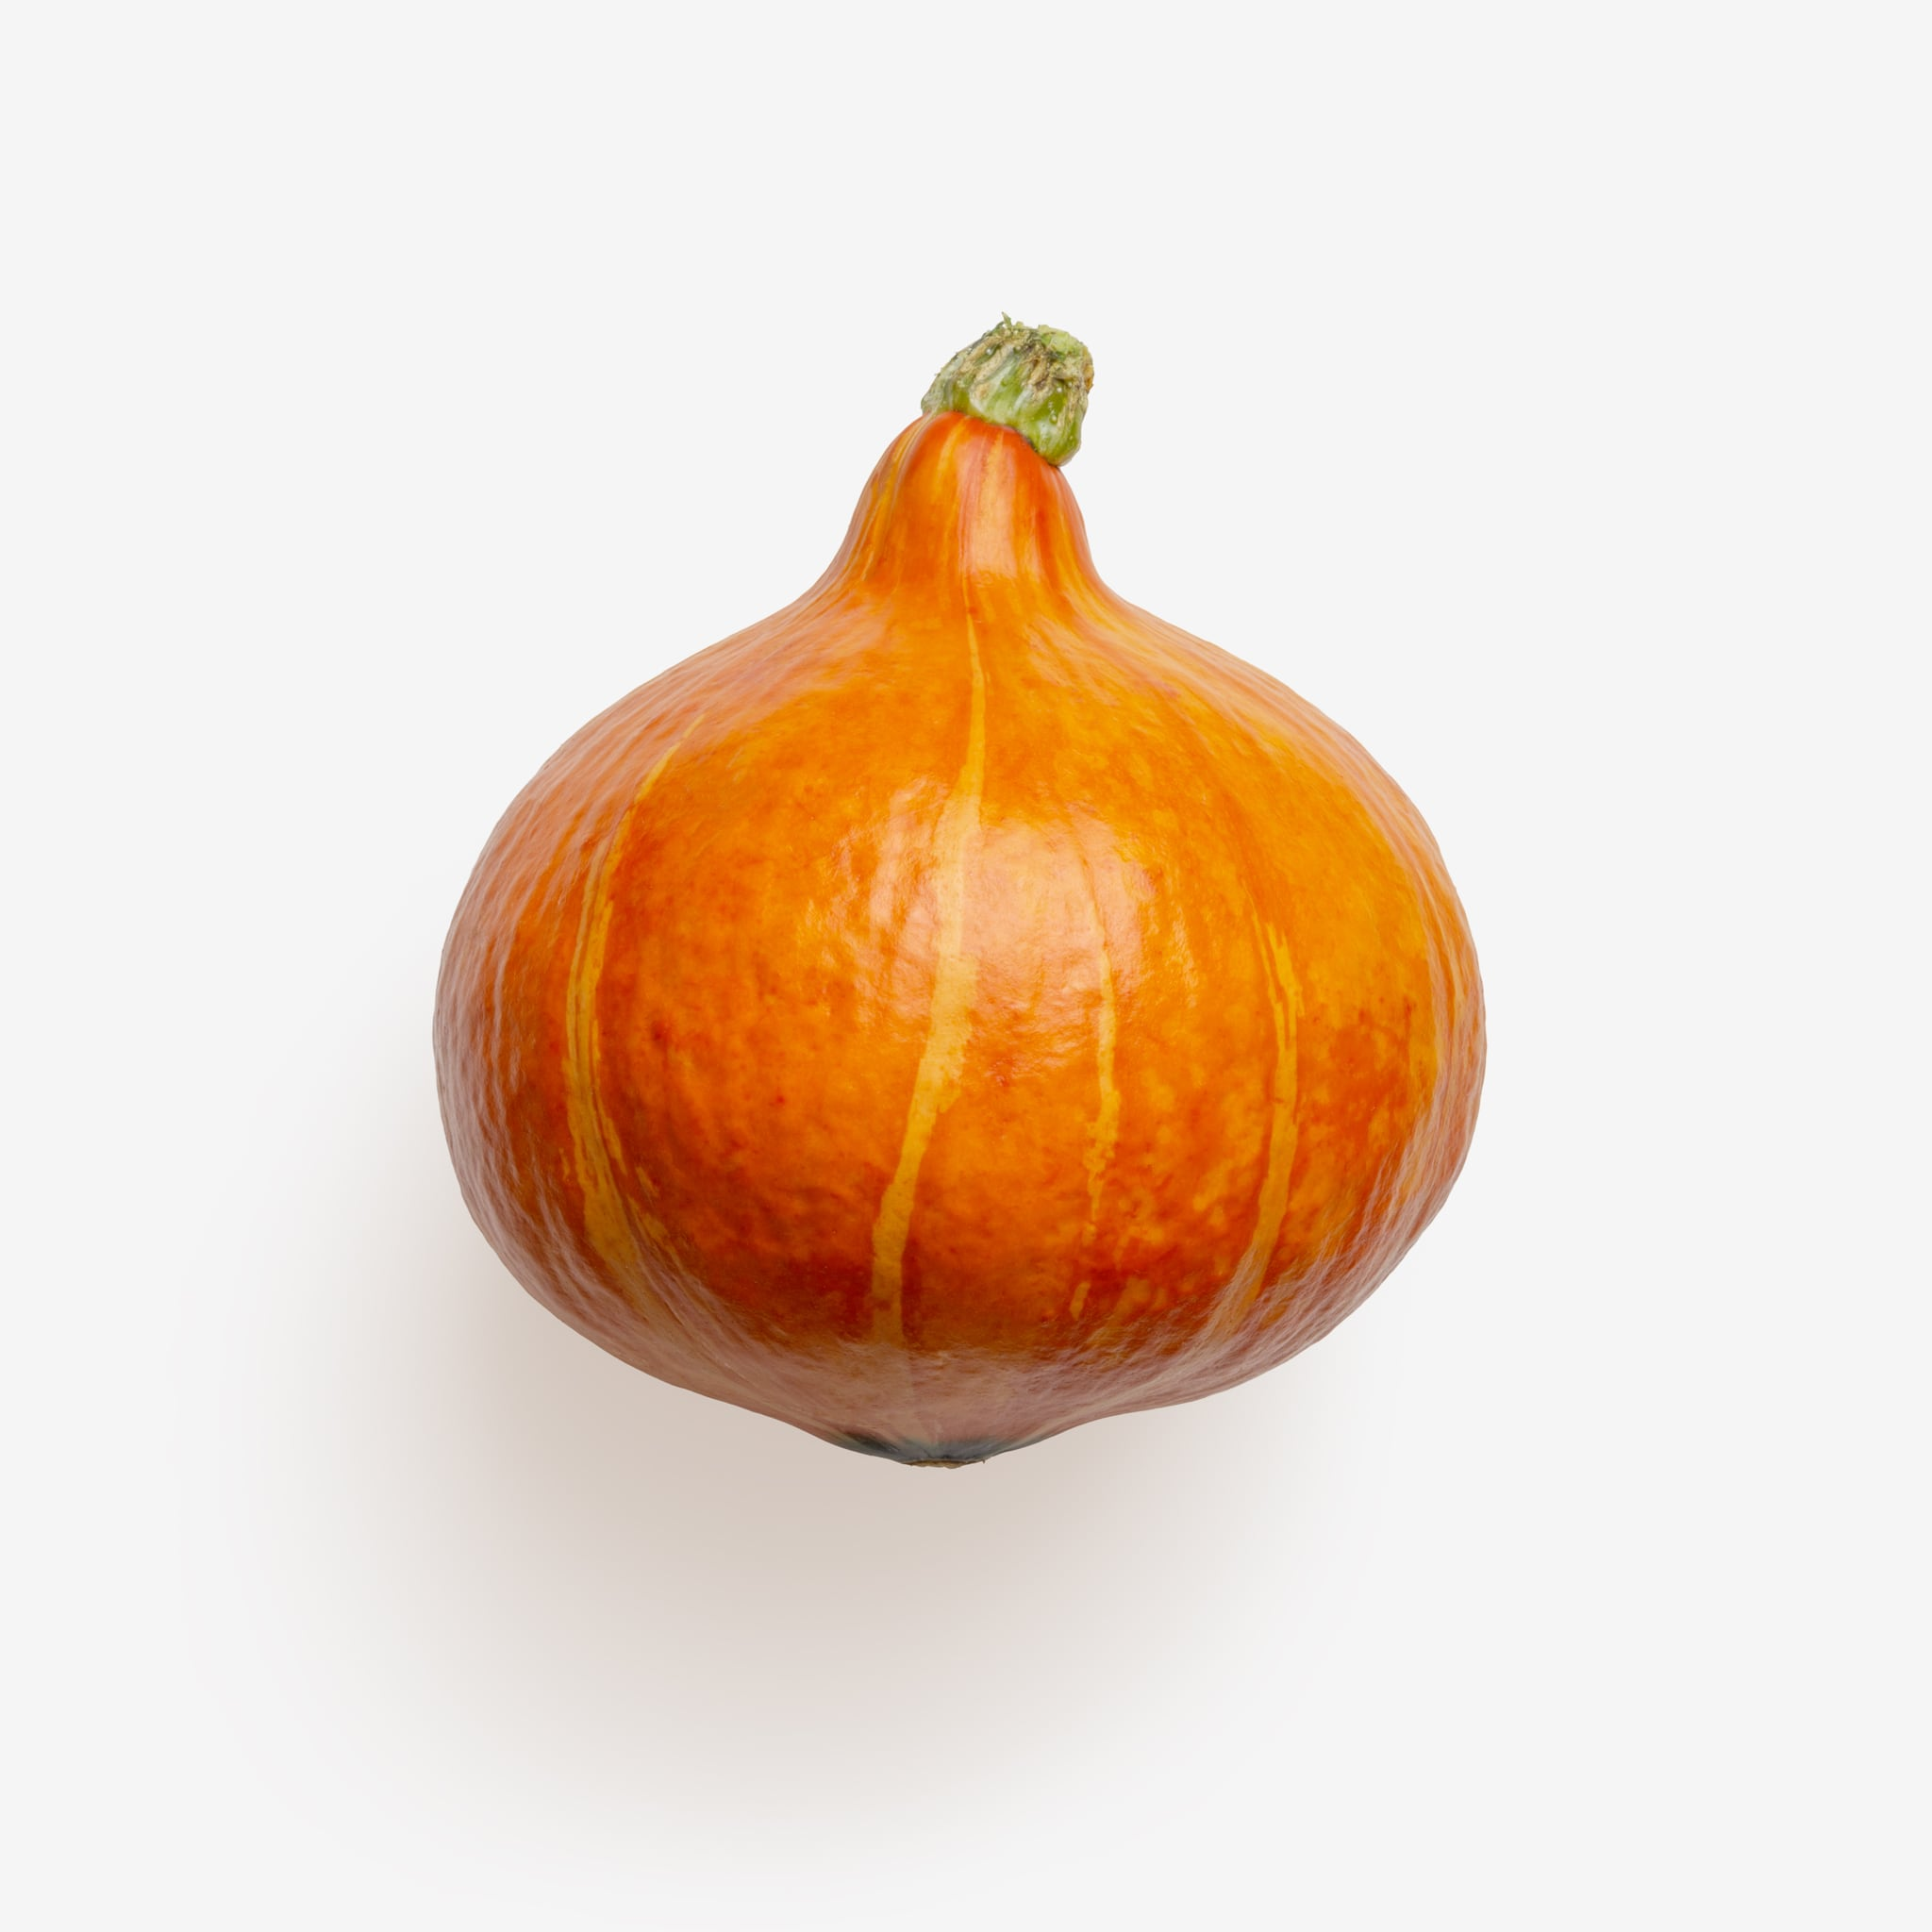 Isolated Pumpkin psd image